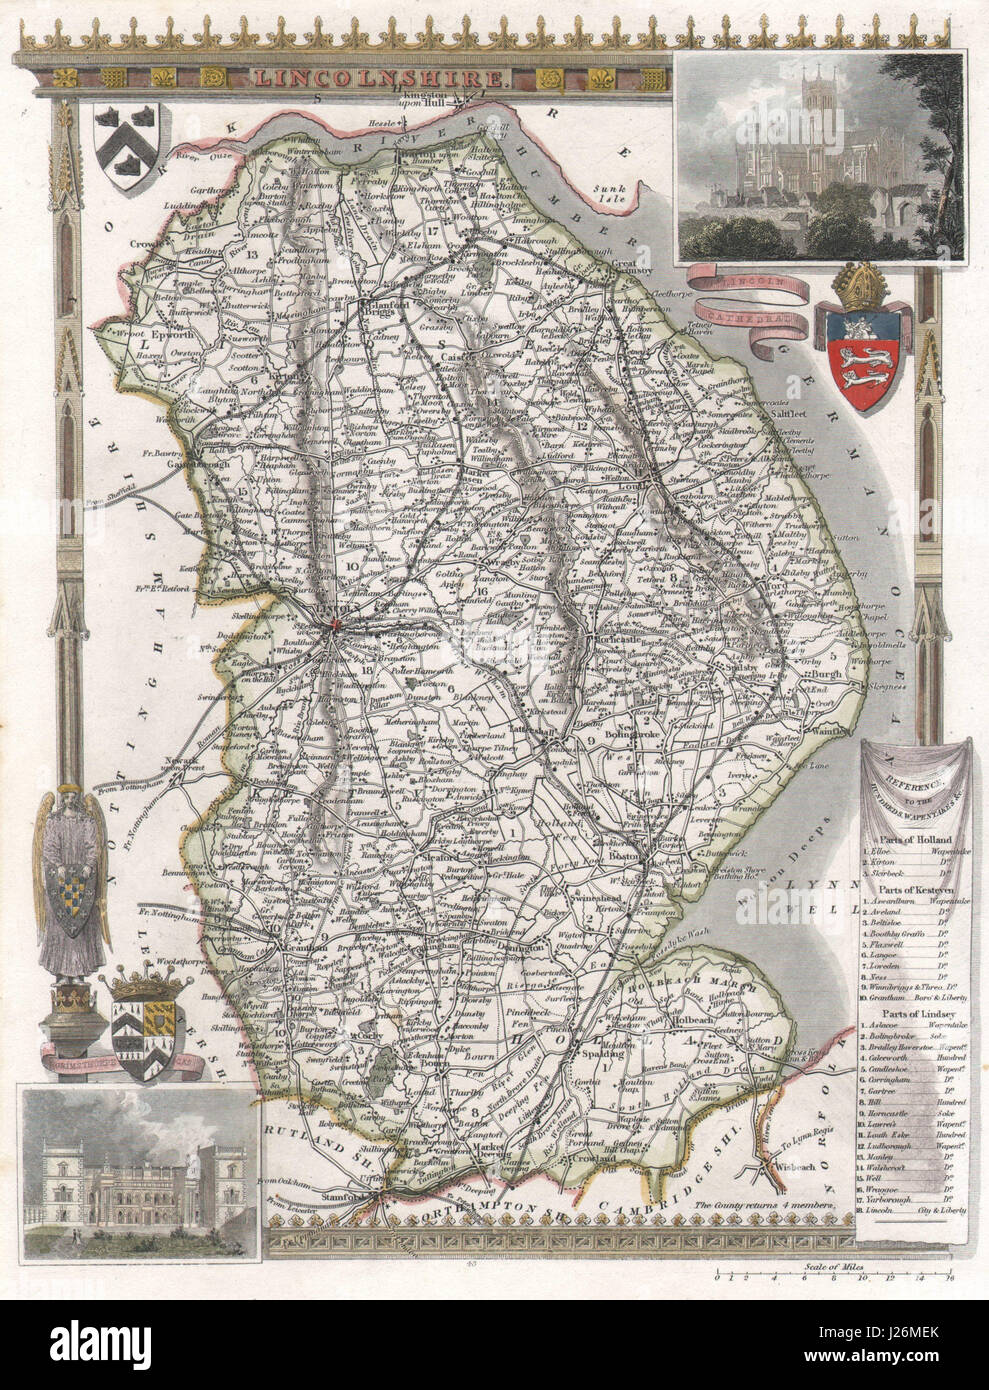 Railways Lincolnshire Antique Hand-coloured County Map Moule C1840 Old Buy One Give One